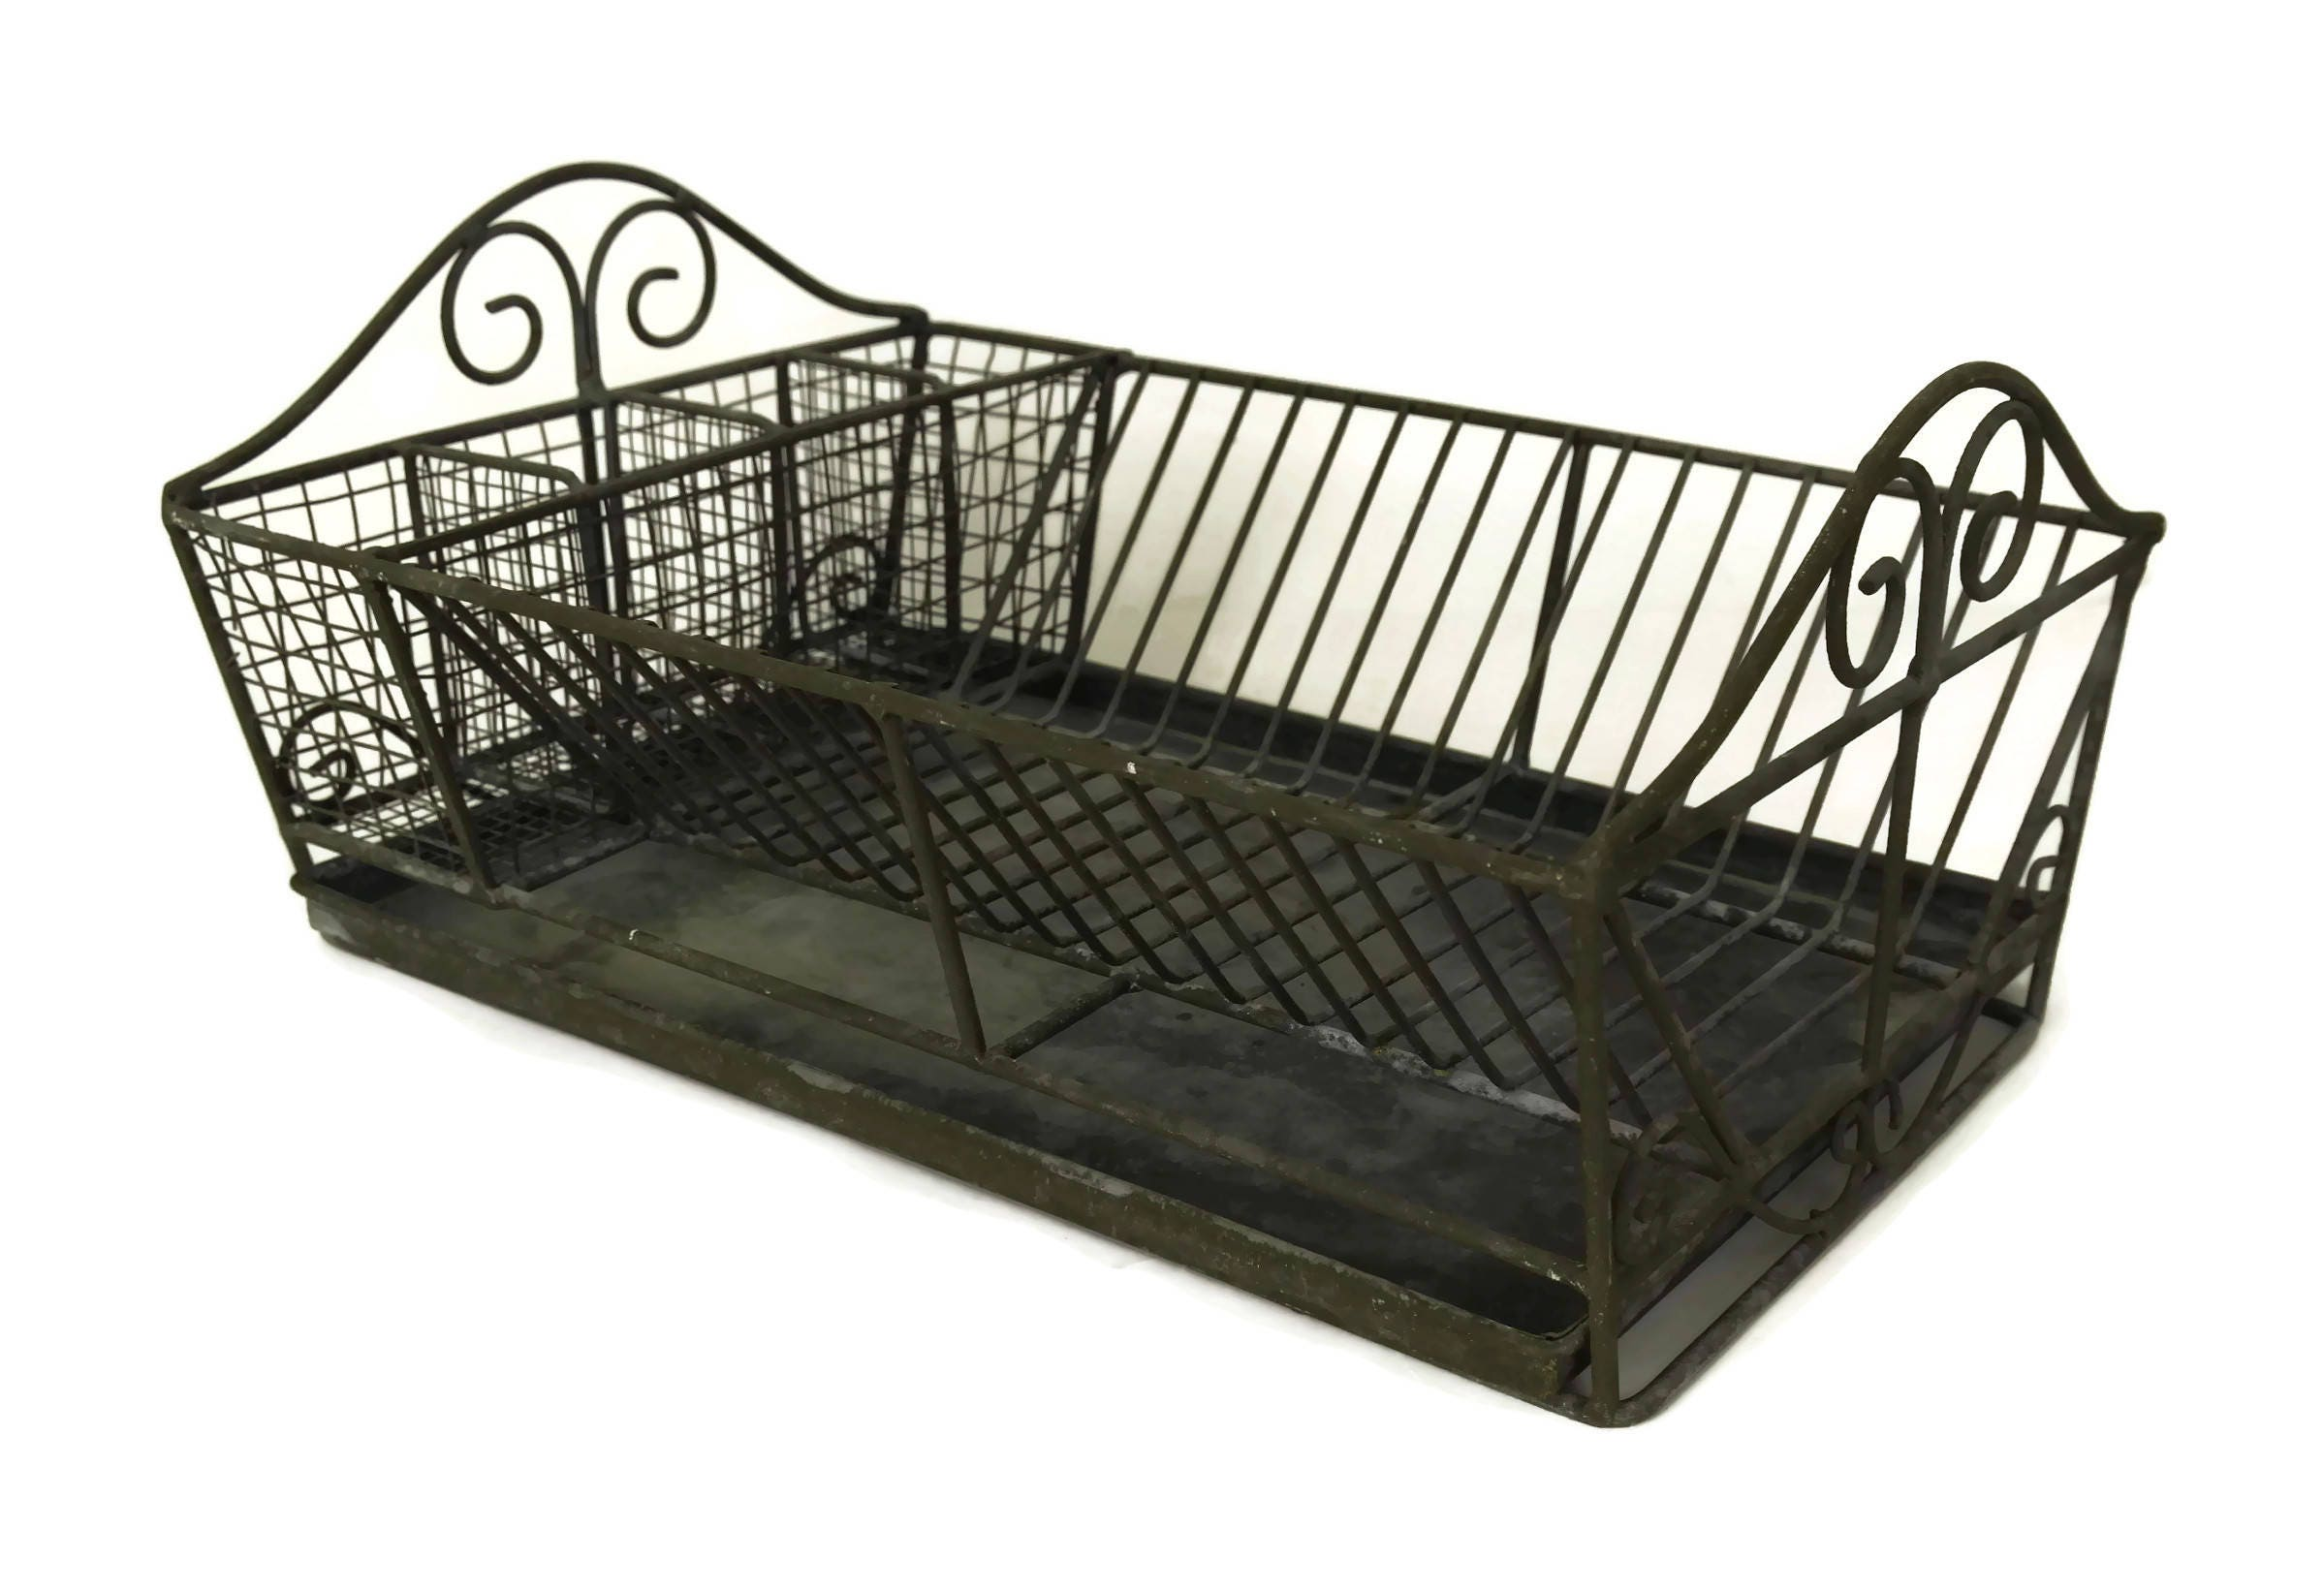 Wire Dish Drying Rack With Drainer Tray Plate Holder Vintage French Rustic Kitchen Decor